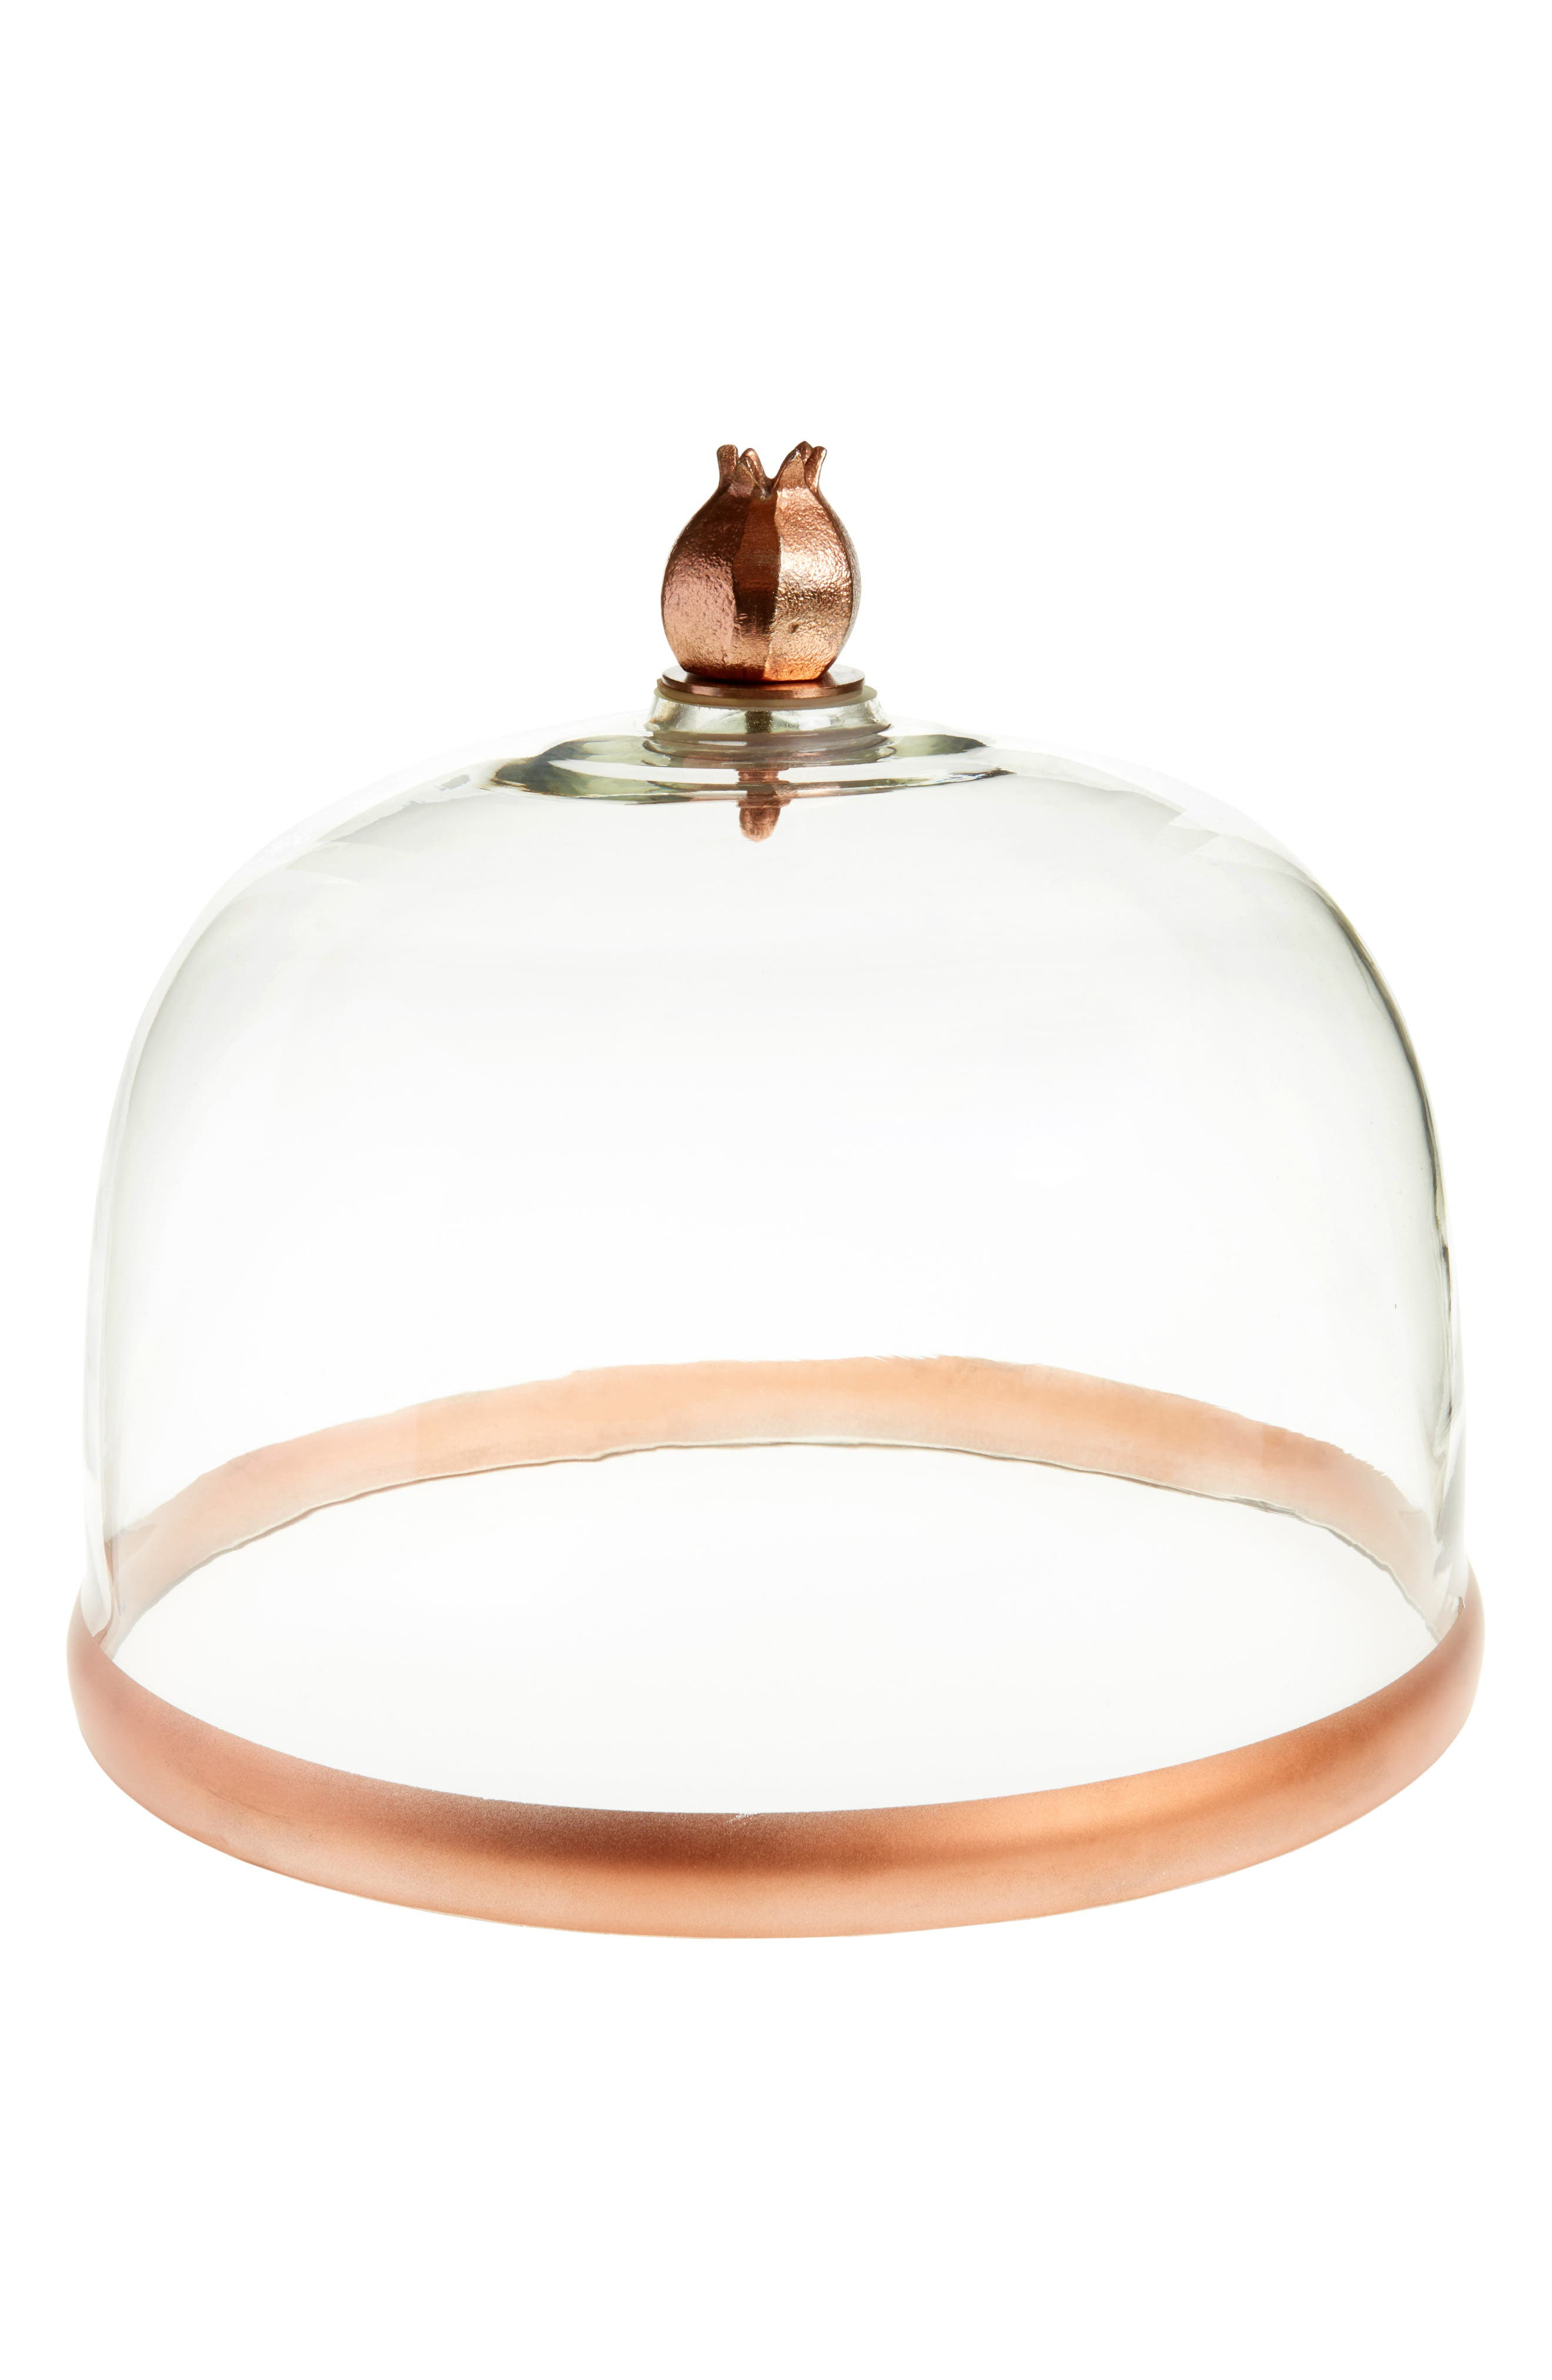 Main Image - Nordstrom at Home Pomegranate Cake Cloche